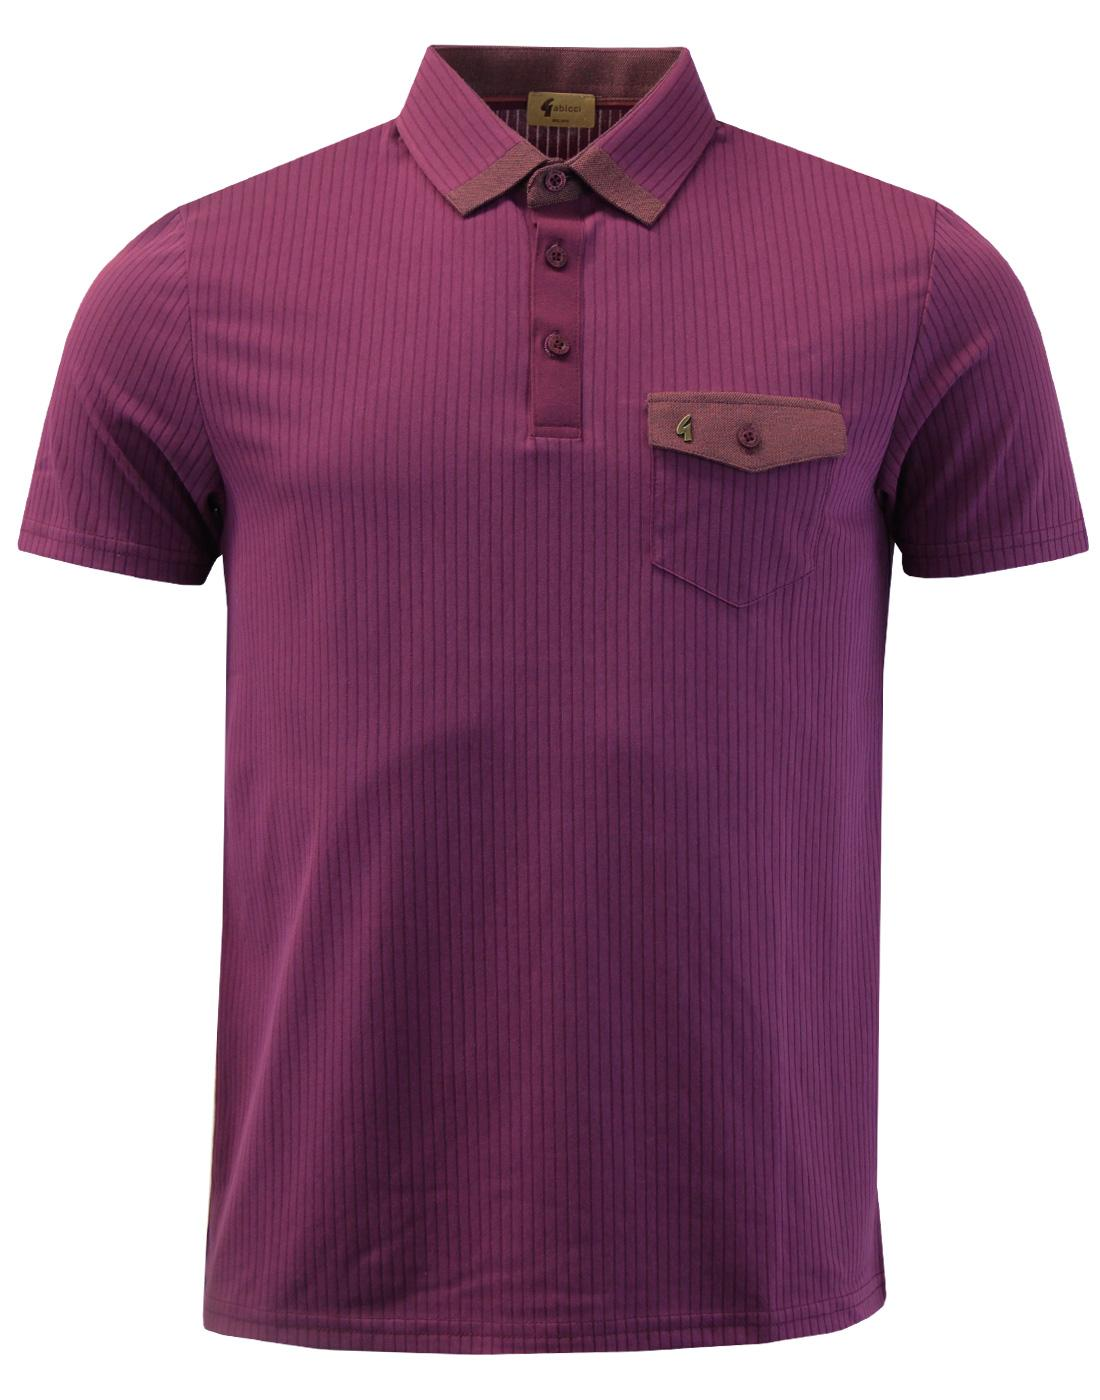 Grove GABICCI VINTAGE Retro Mod Ribbed Polo Top